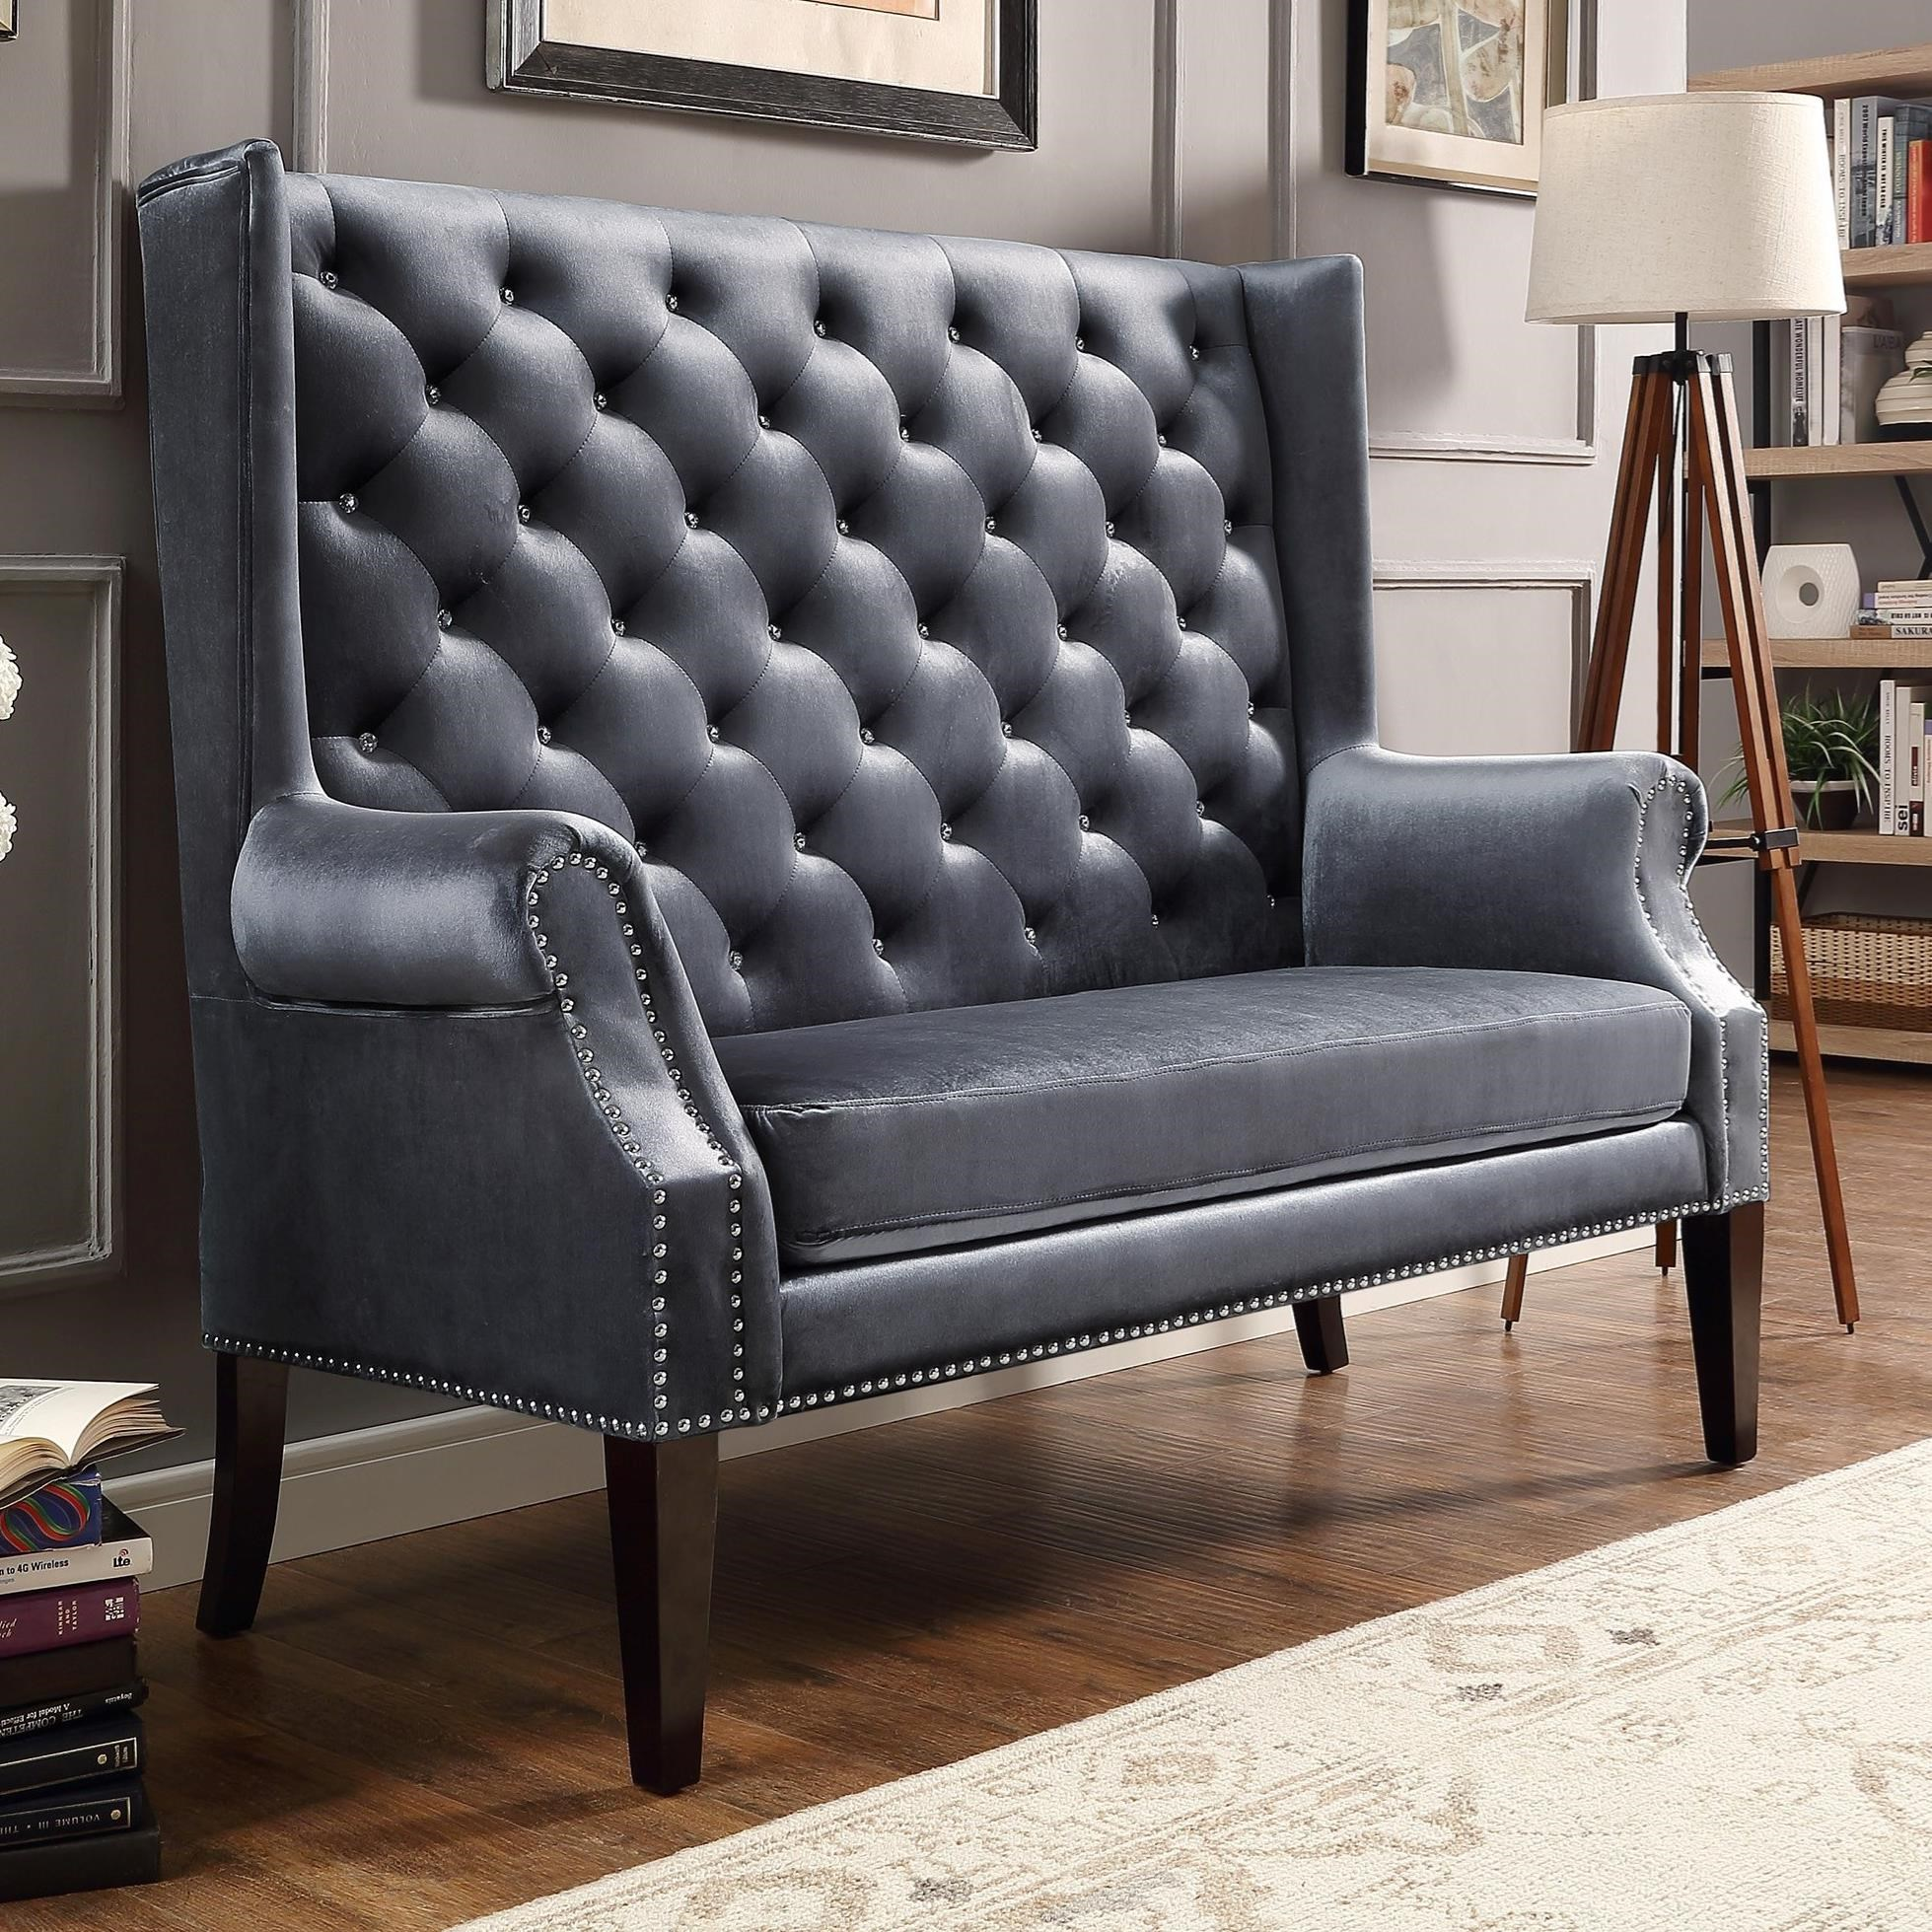 Settee Loveseat Odina Traditional Settee Loveseat With Winged Back And Jewel Tufting By Crown Mark At Royal Furniture